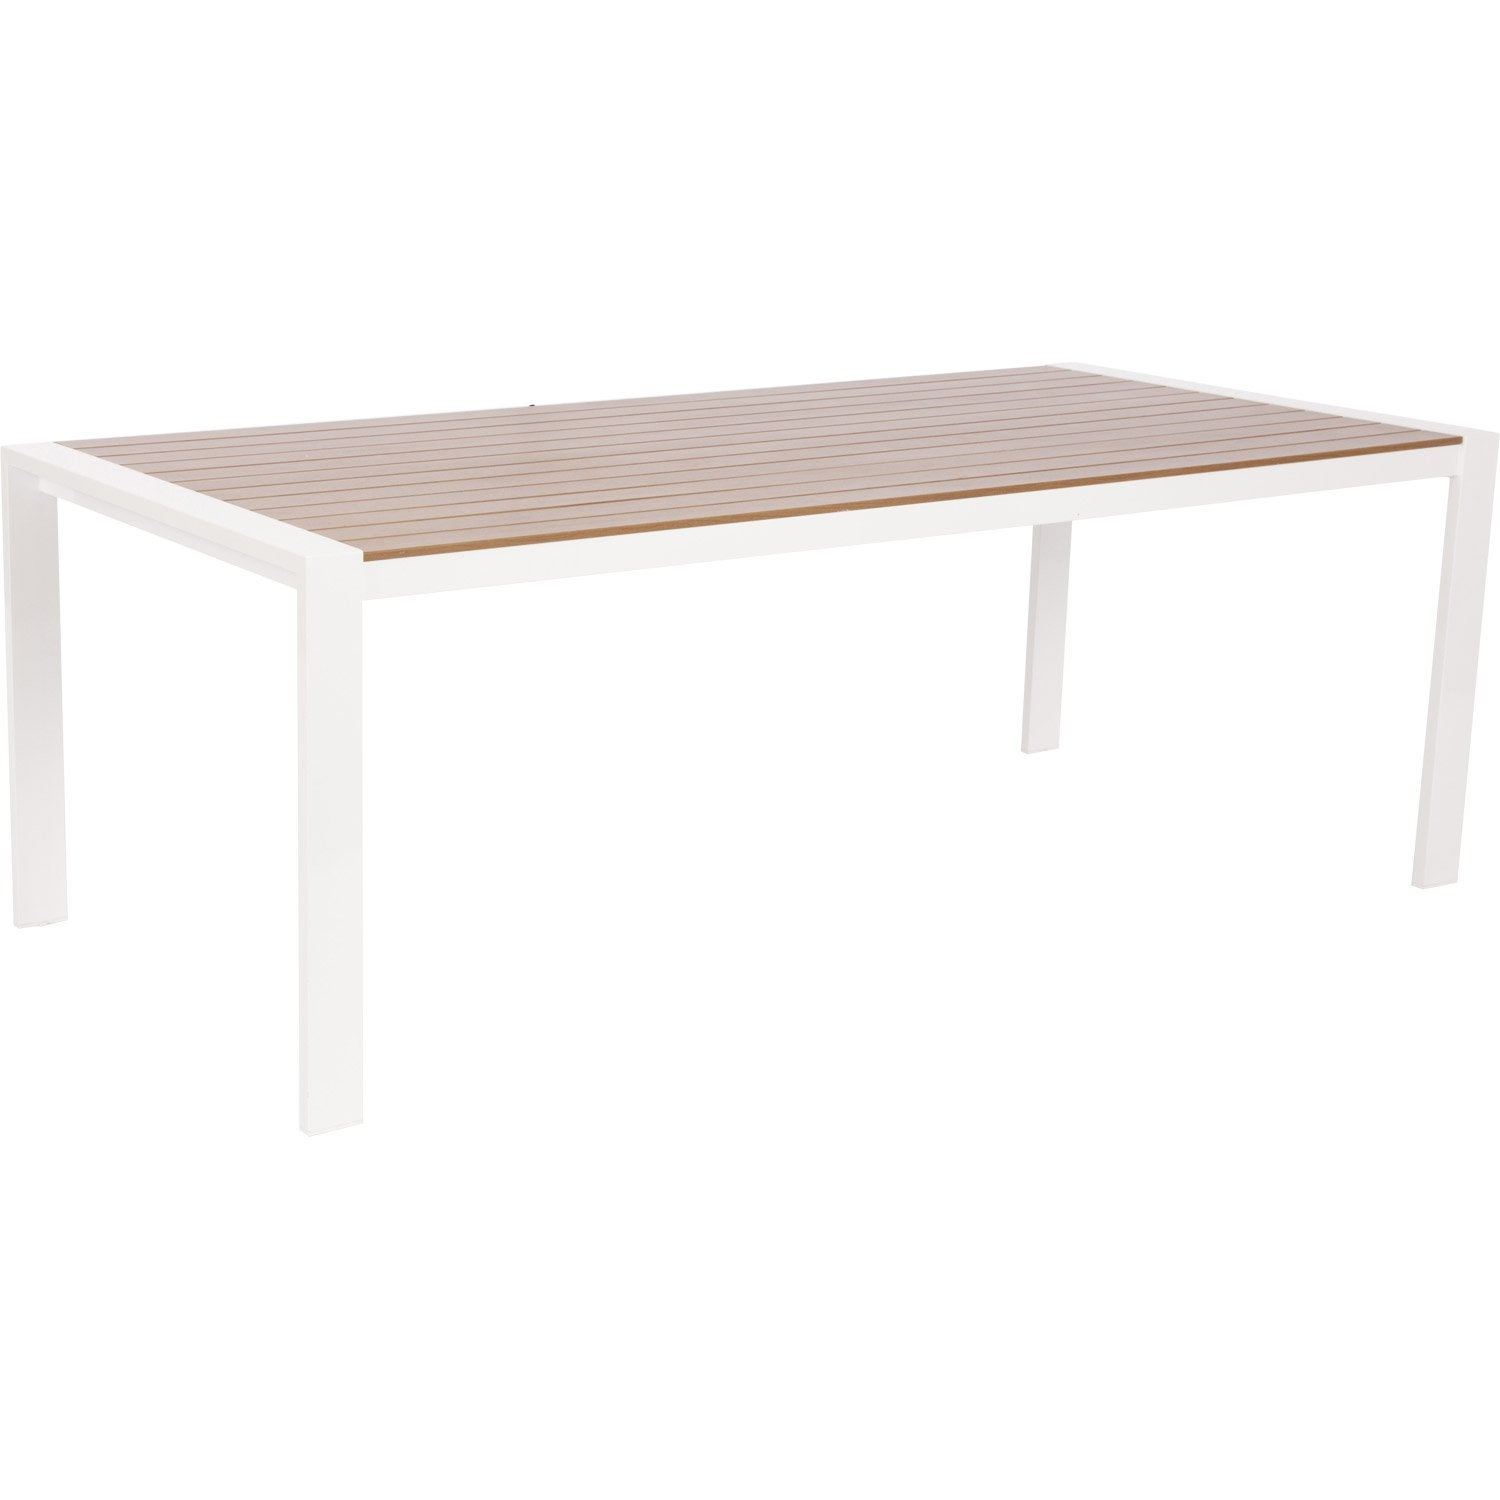 Table de jardin port nelson rectangulaire blanc for Leroy merlin table jardin